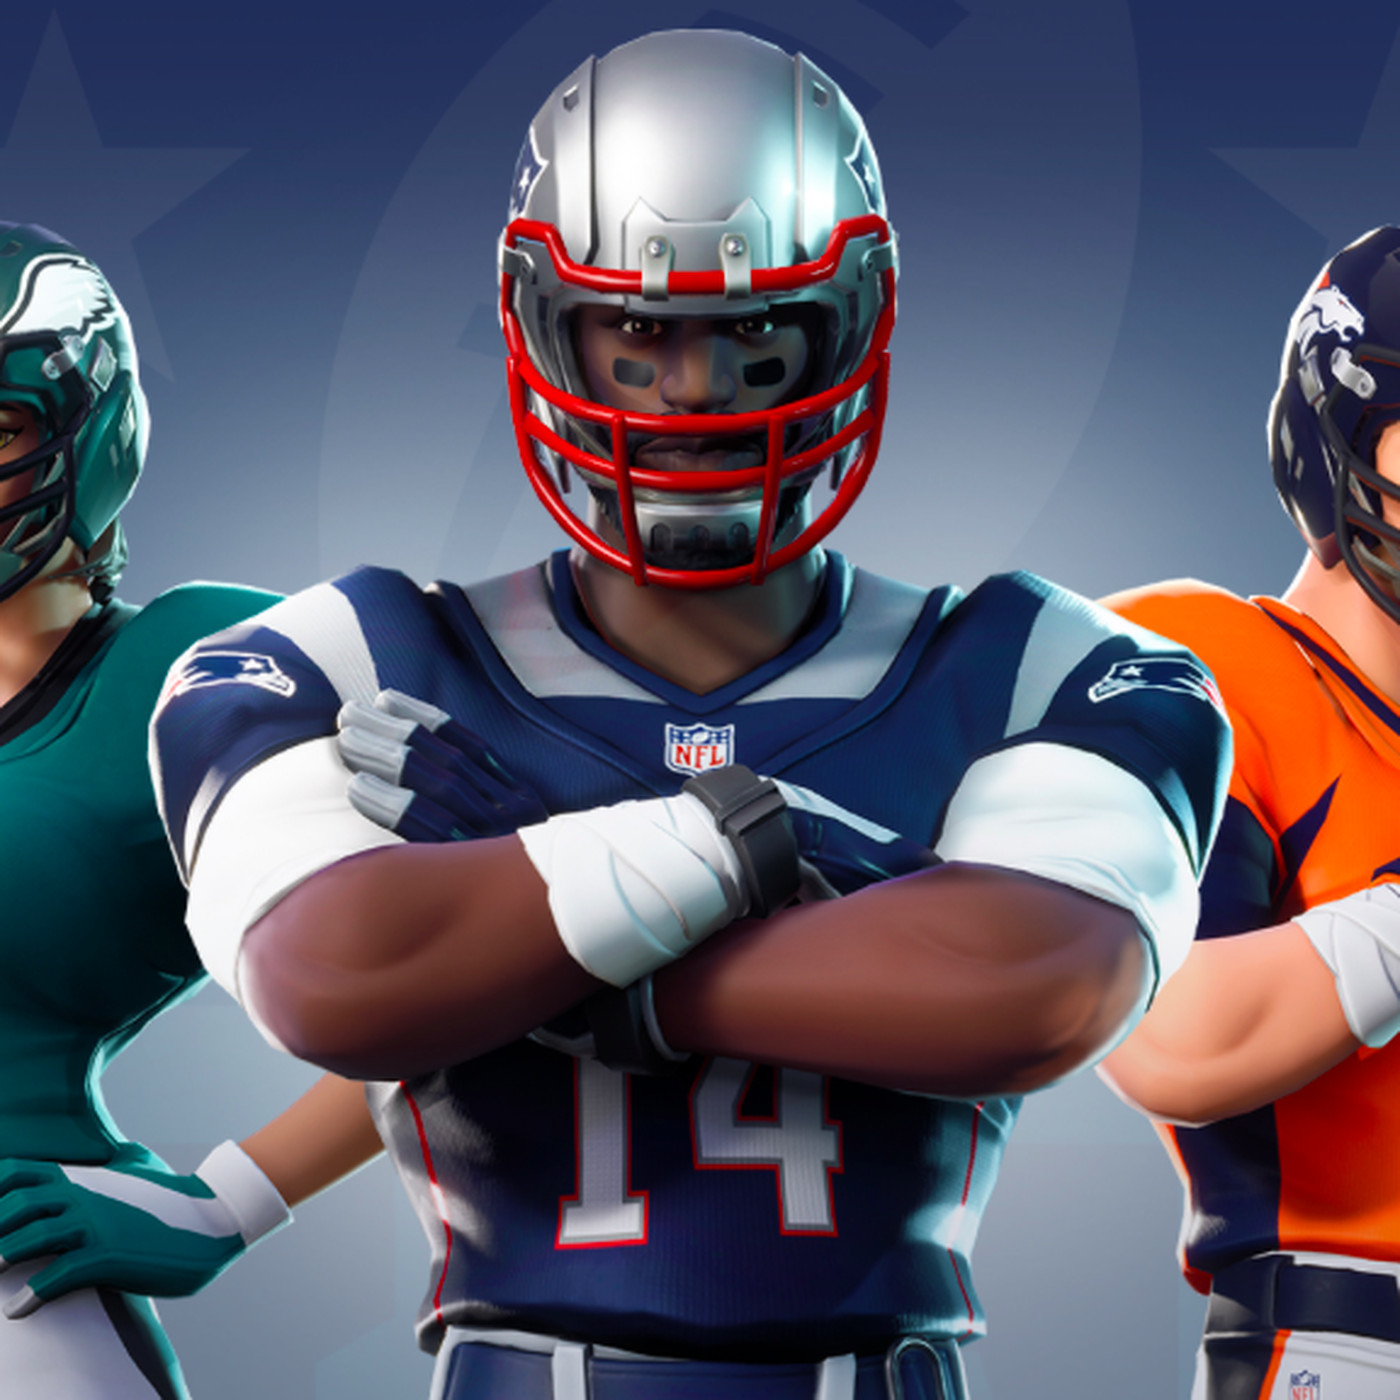 Fortnite will start selling NFL skins this week - The Verge